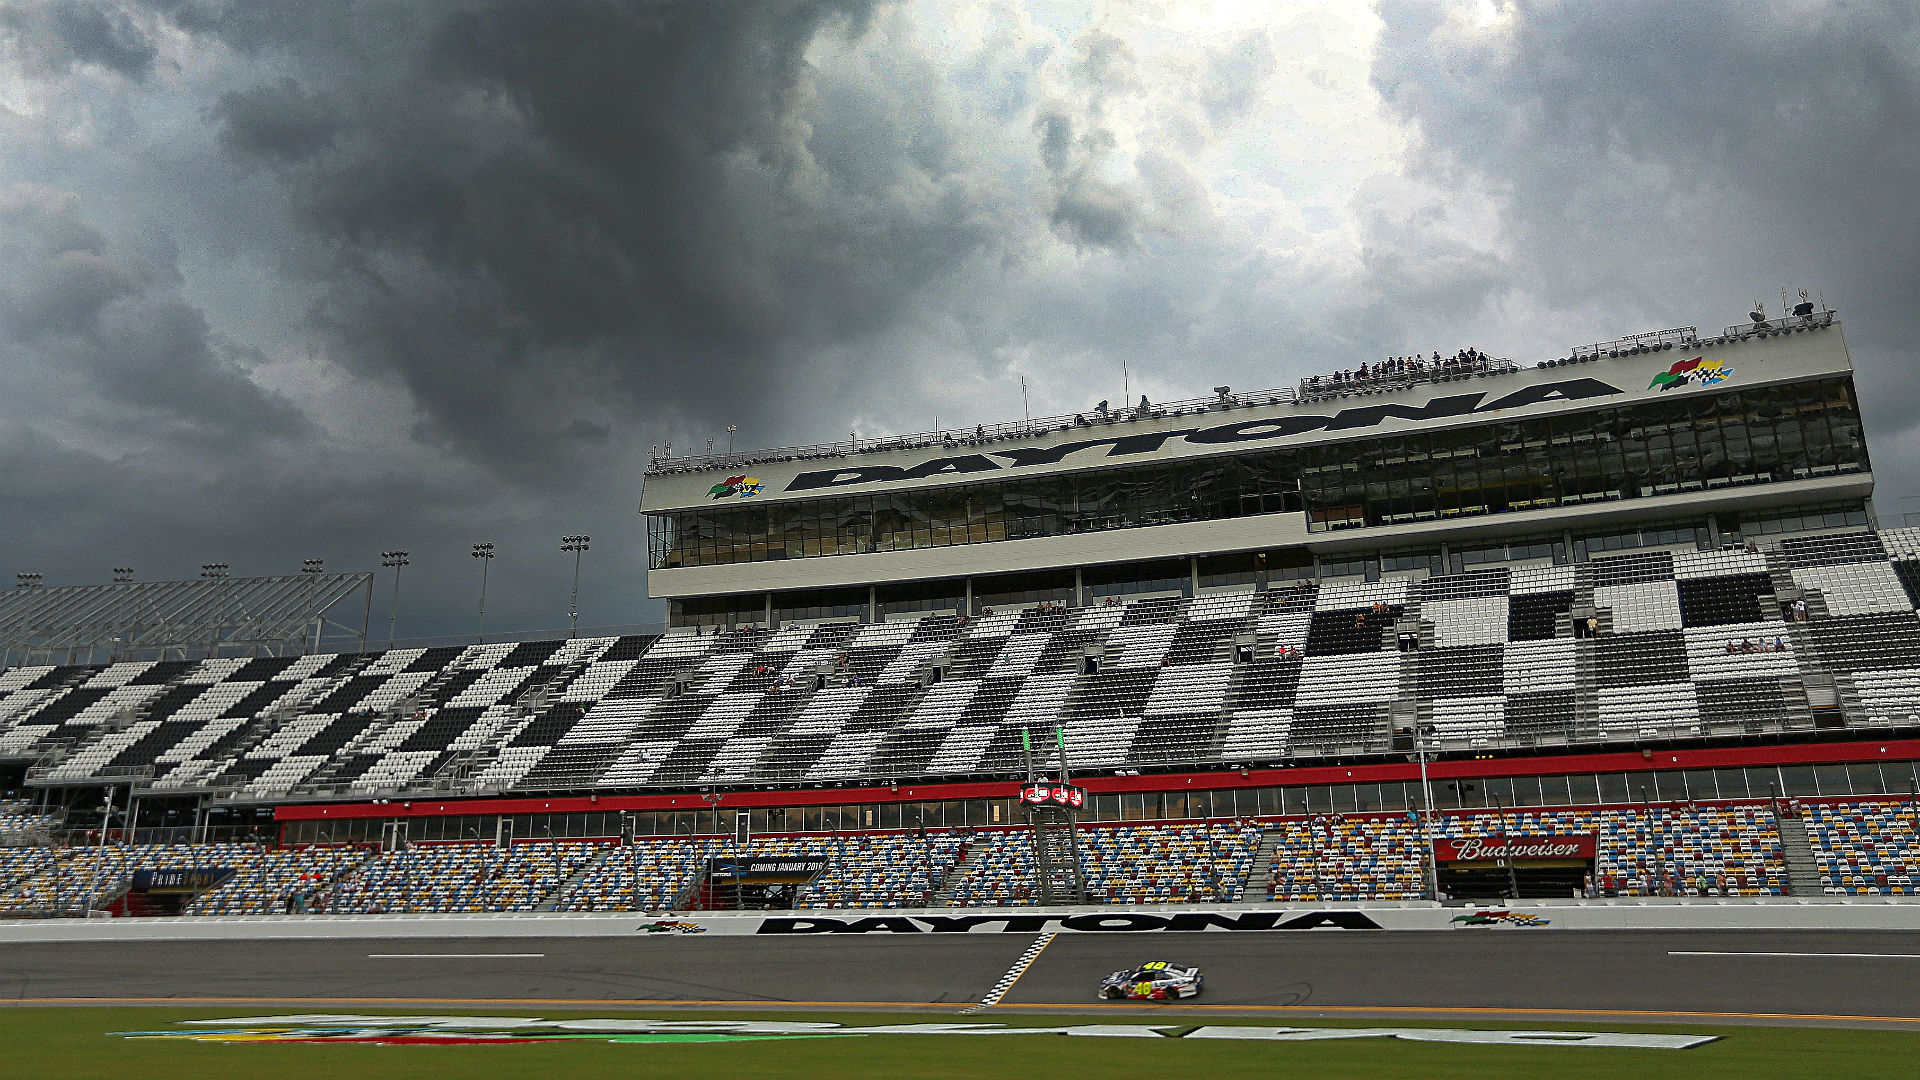 NASCAR At Daytona: Storms possible for Coke Zero 400 weekend